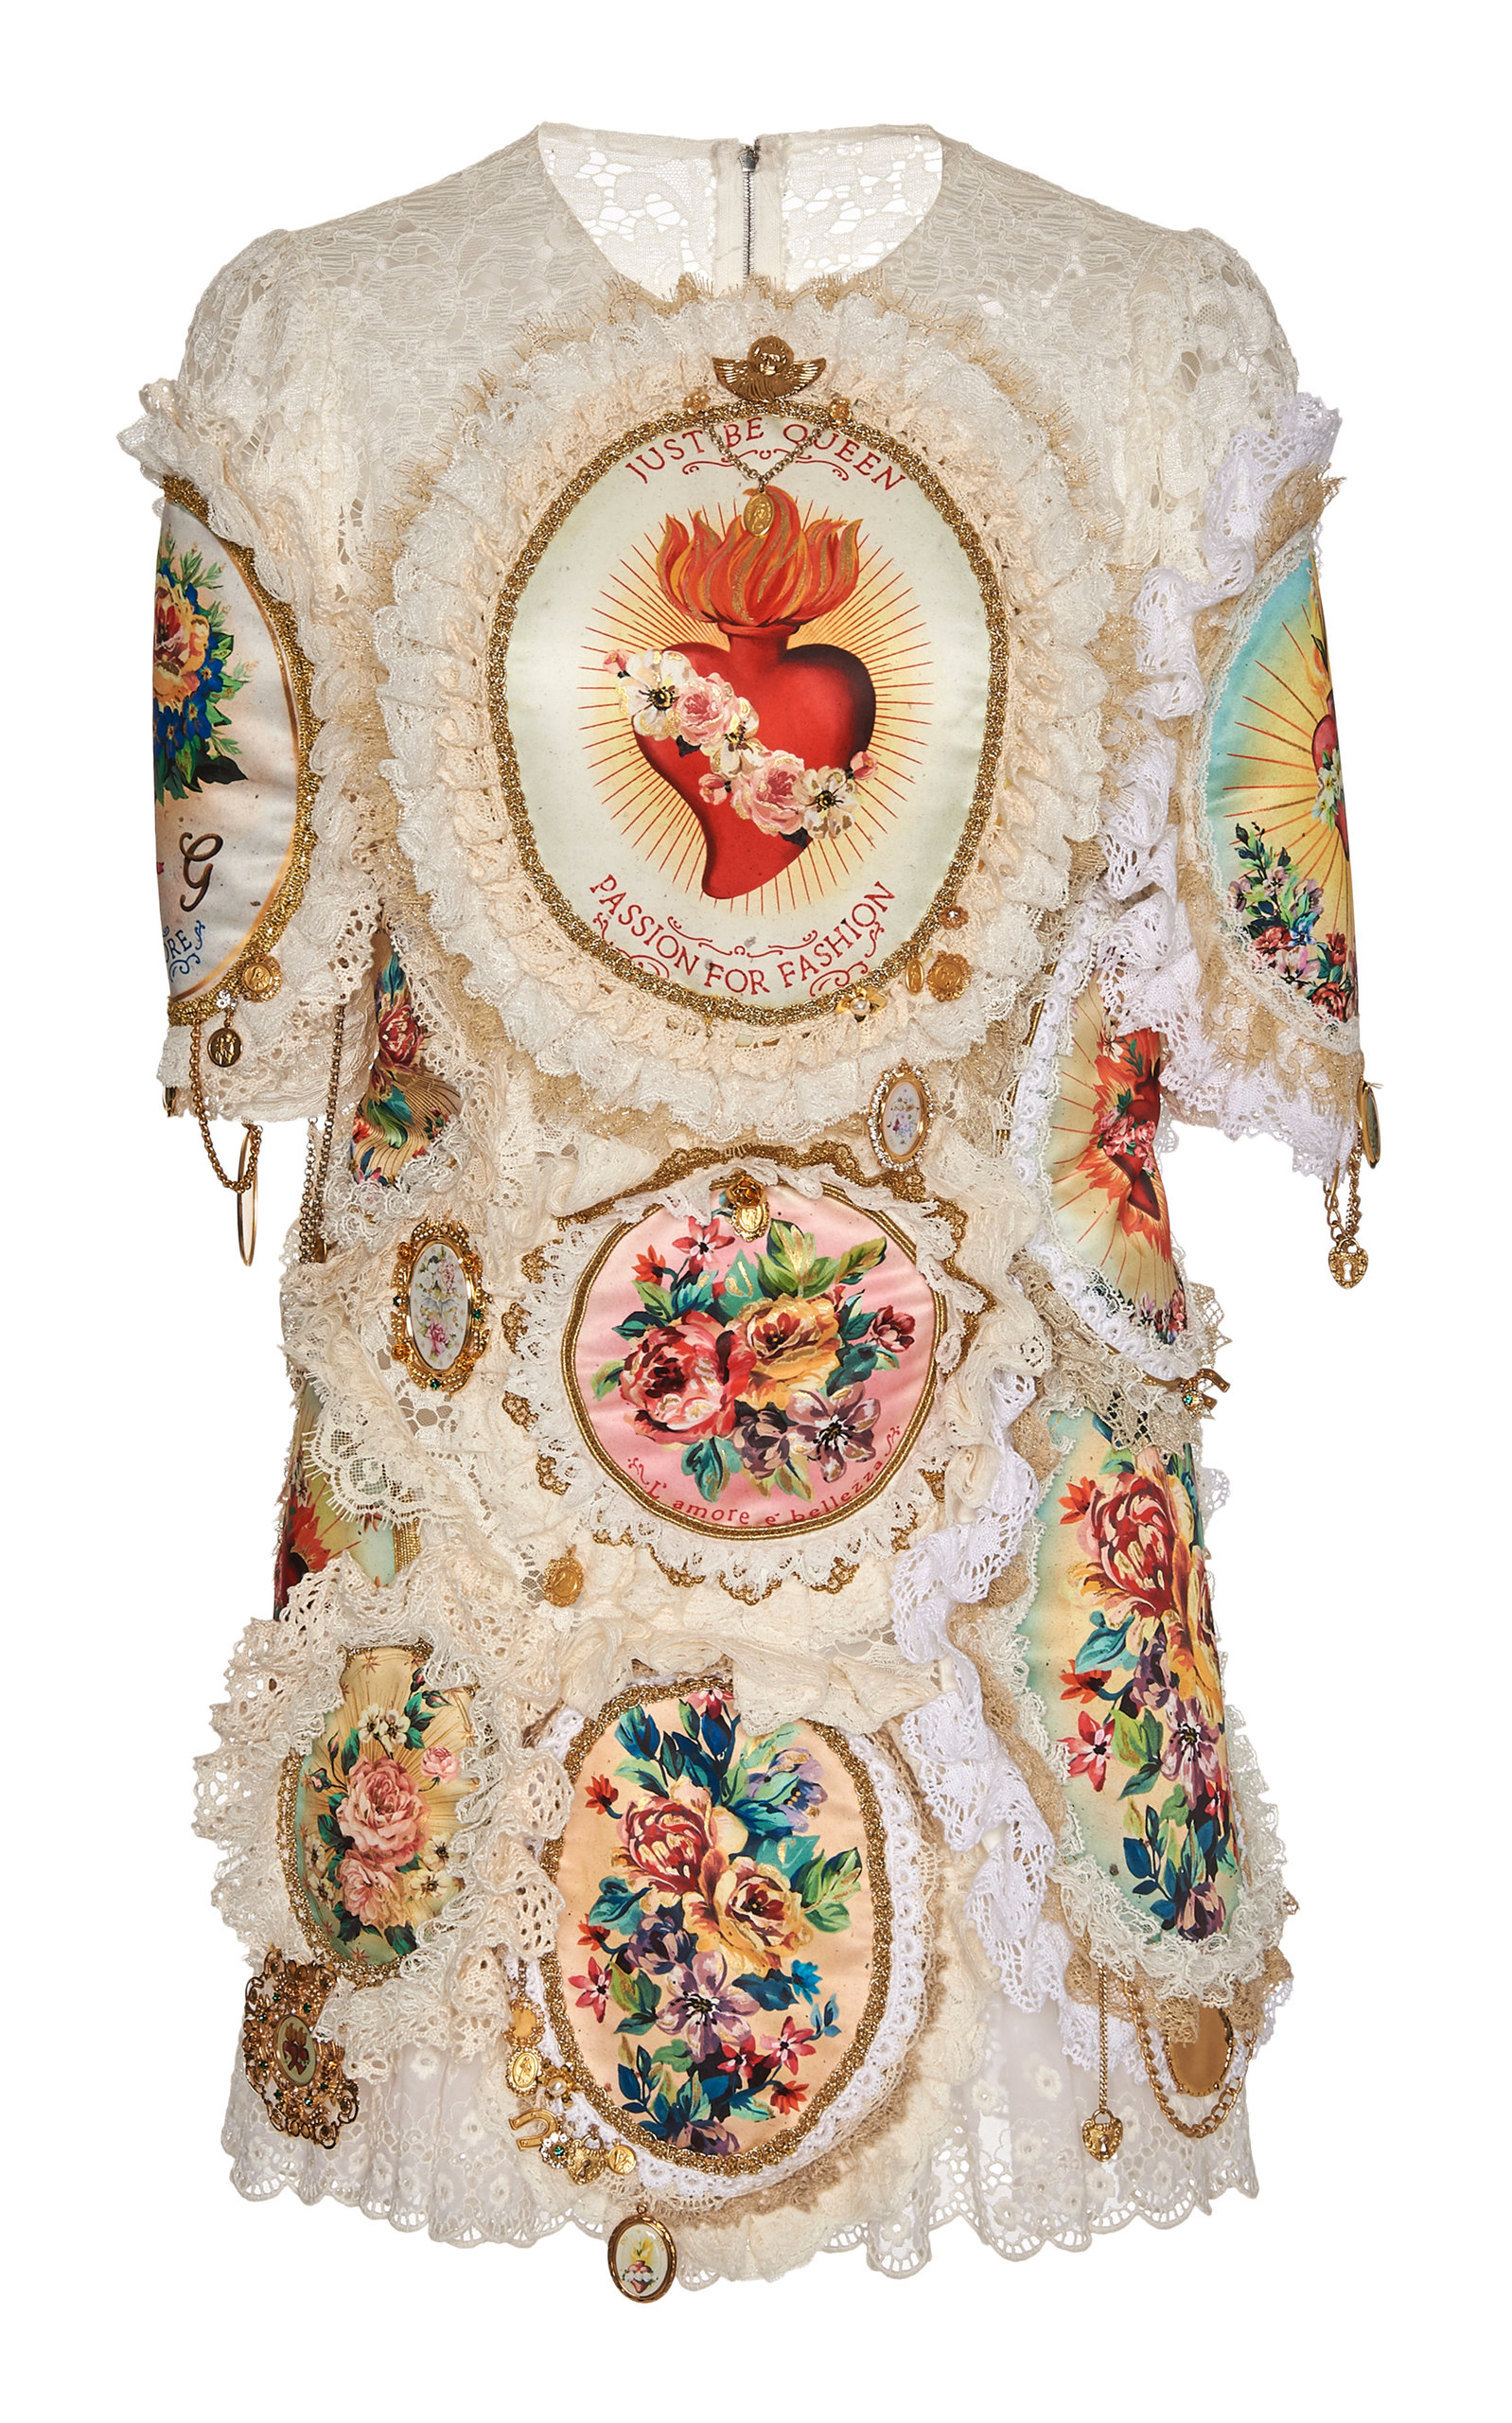 990eb19d4ee Dolce   Gabbana Embroidered Eyelet Lace Mini Dress In Floral. Moda Operandi